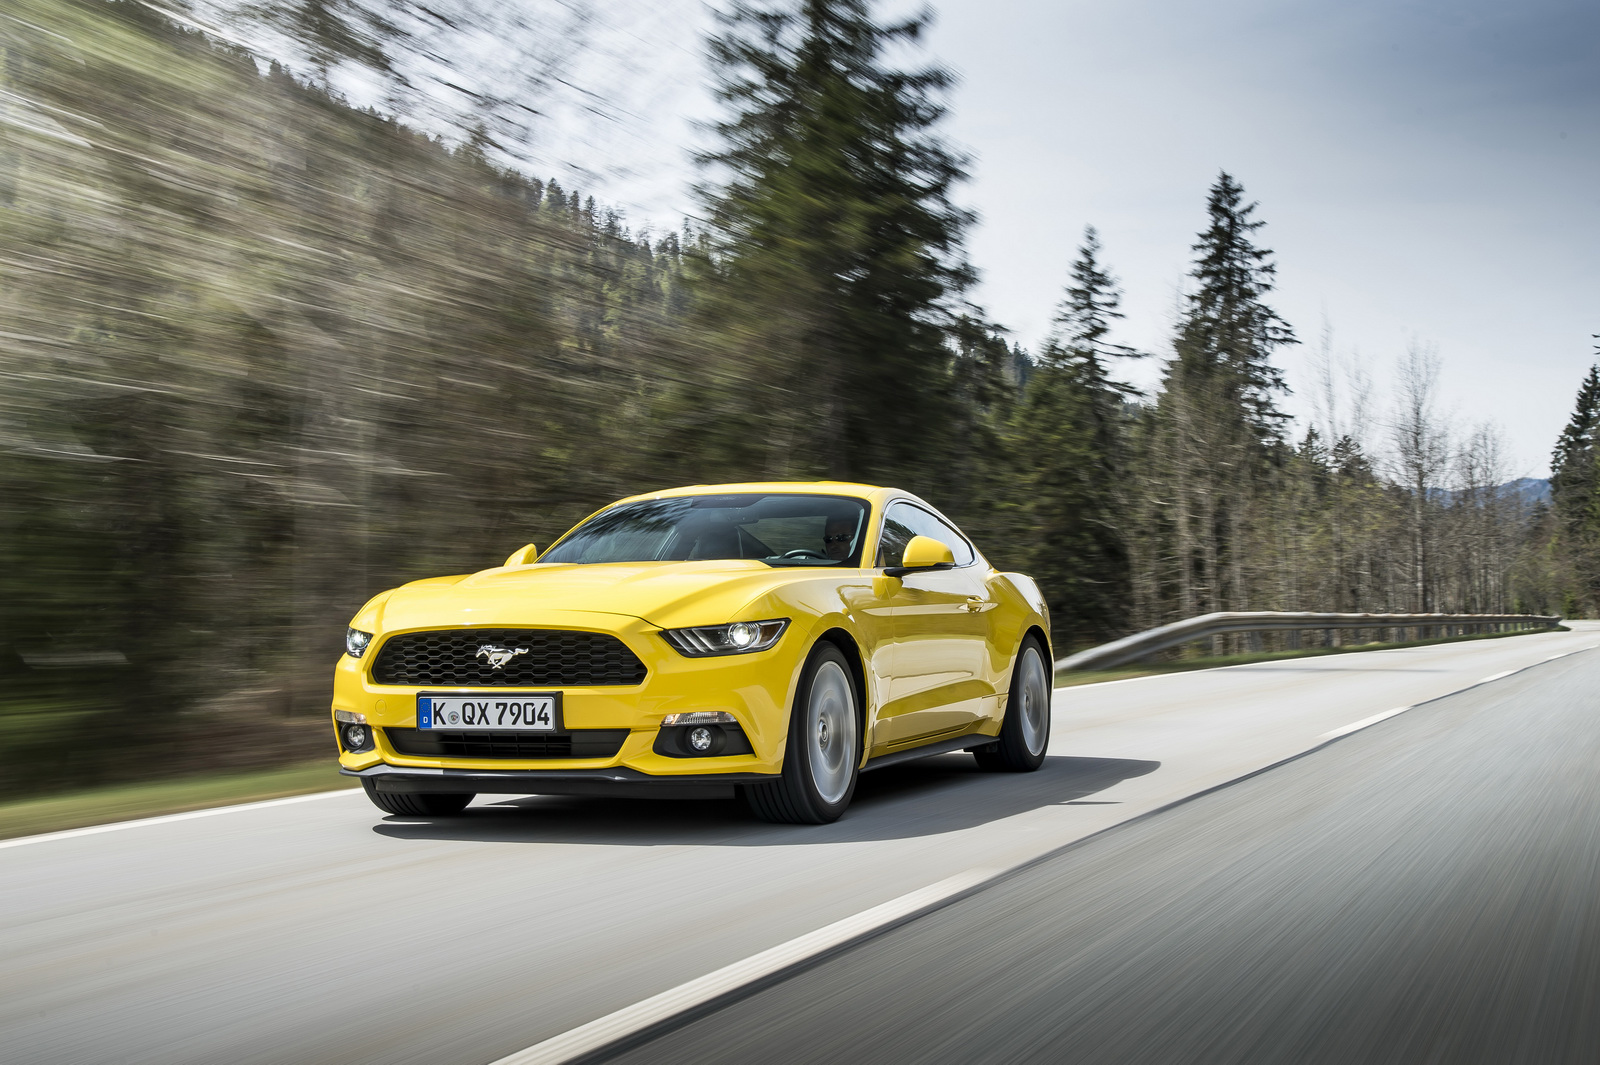 Ford Mustang Is The World S Best Selling Sports Car With